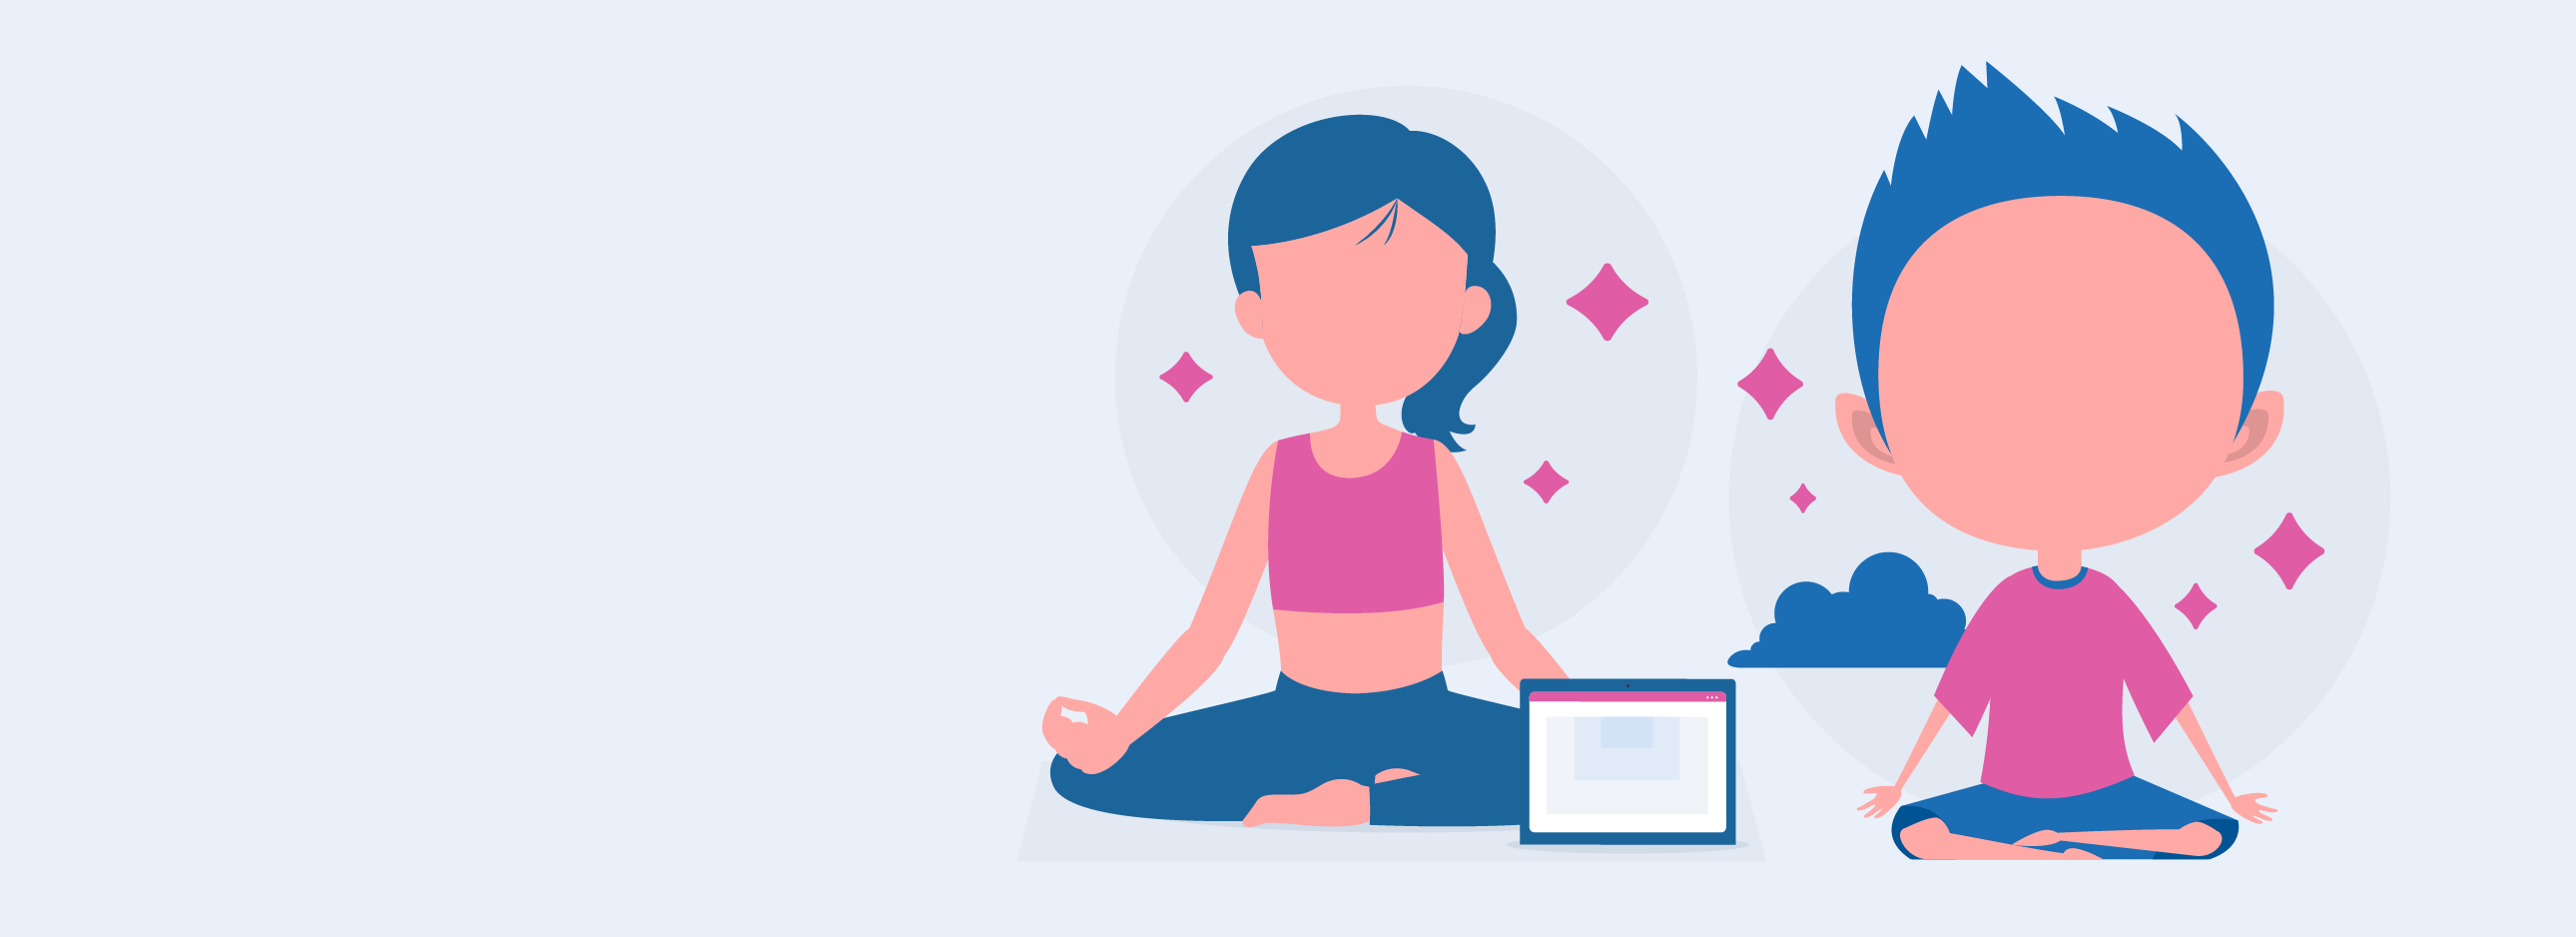 Two children sitting in meditation poses, doing meditation for kids learning how to be present